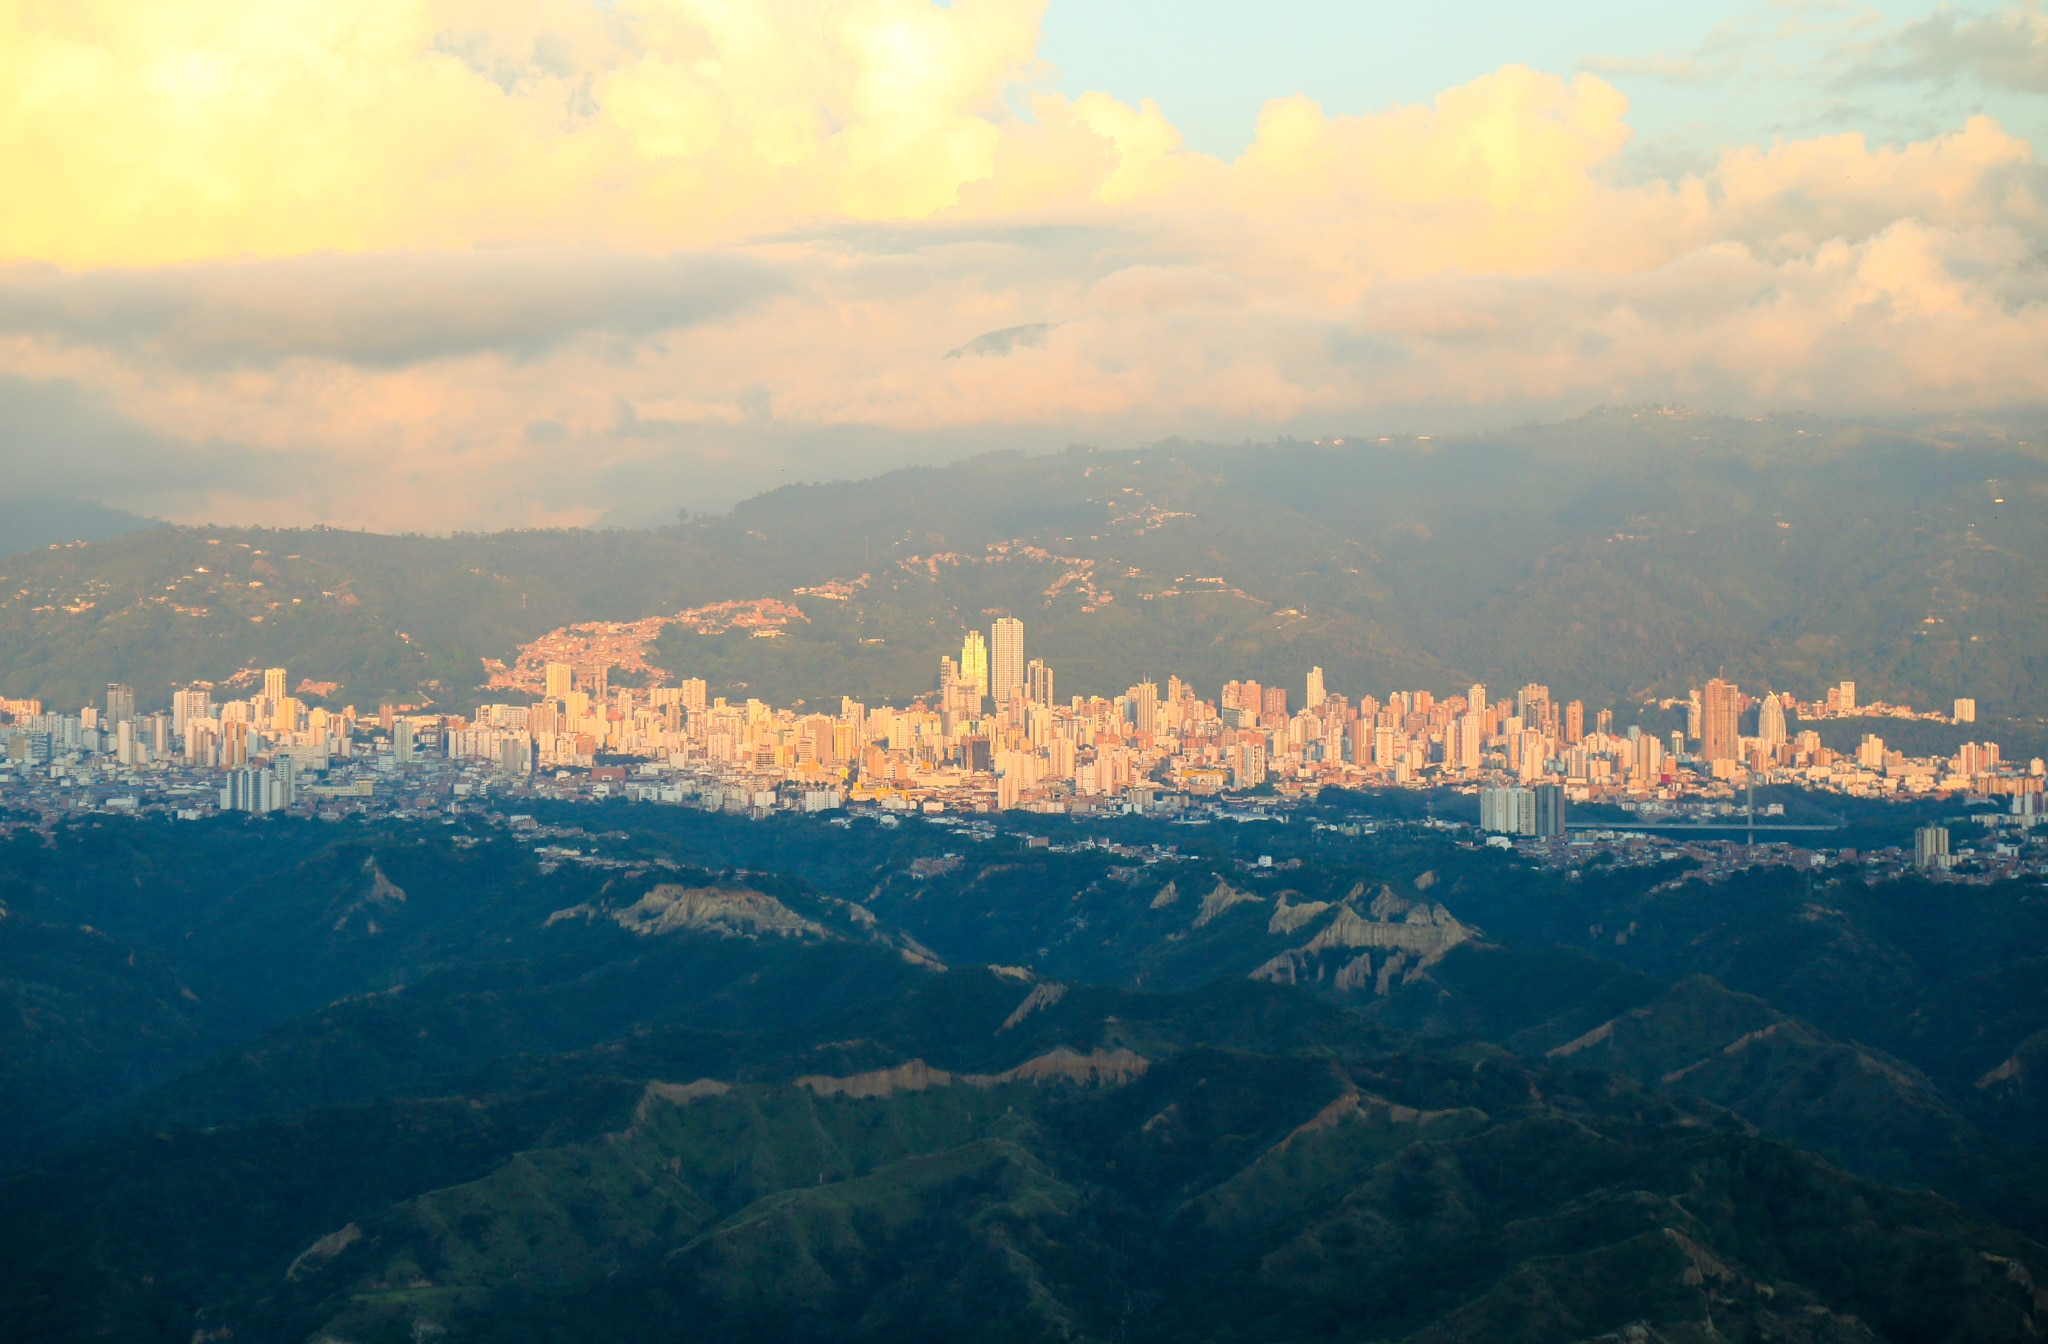 Bucaramanga, Colombia, as seen from the air (Alison Harding/USAID/OFDA)